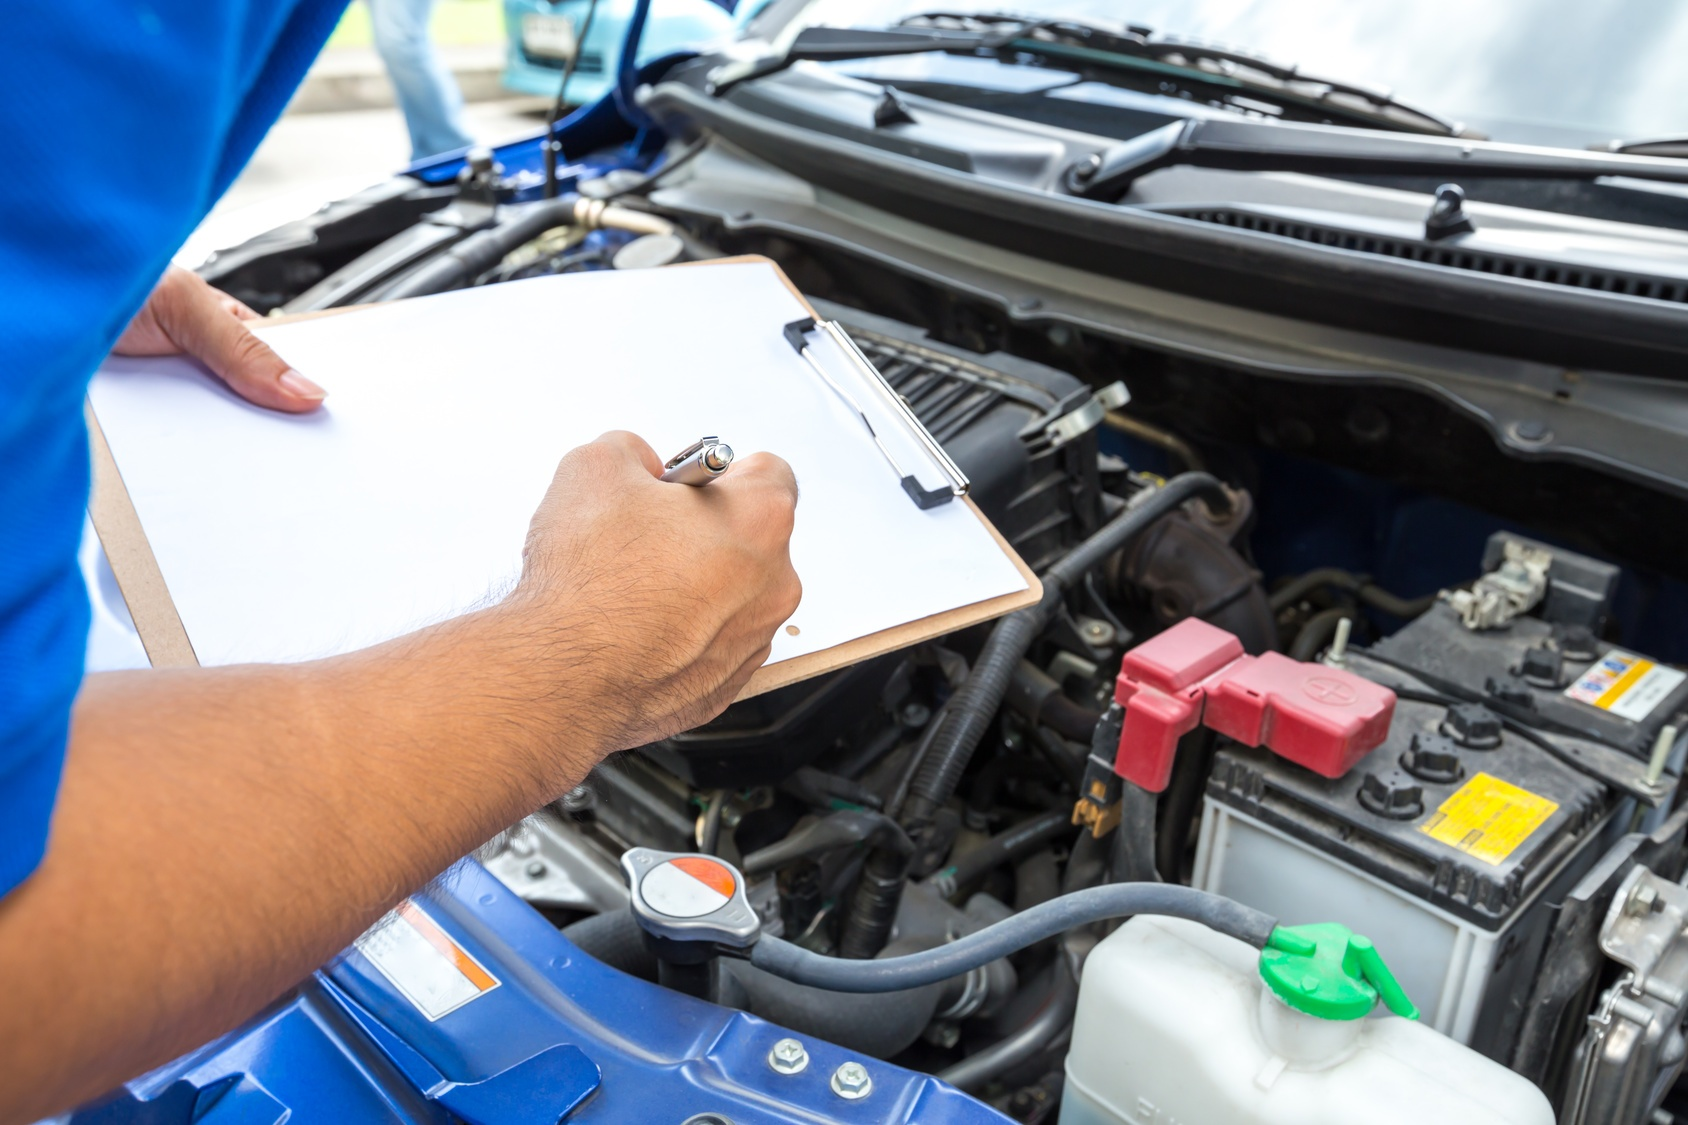 Commercial Vehicle Safety Inspection Guidance